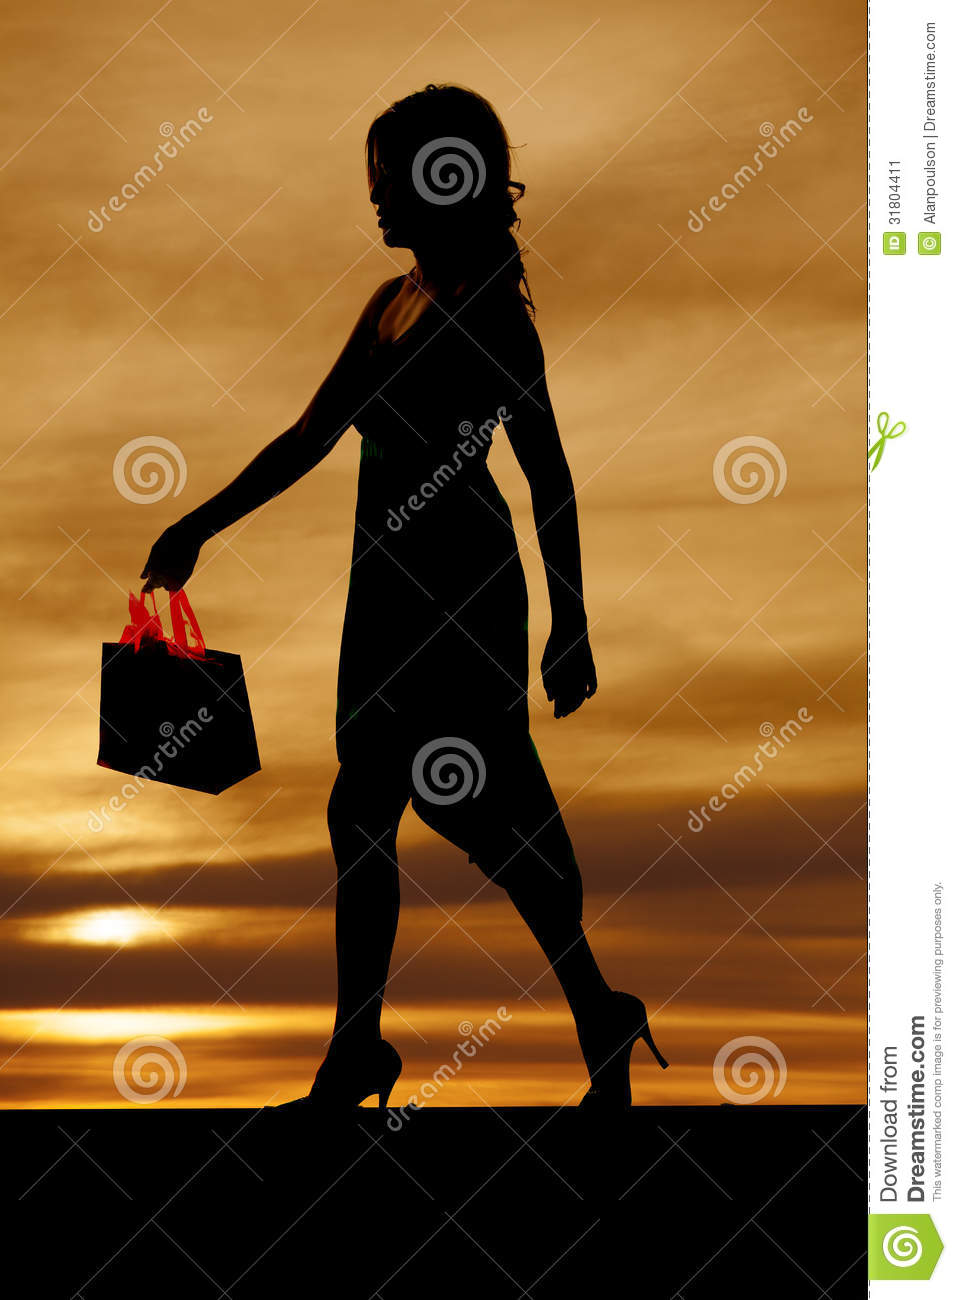 Woman Silhouette With Shopping Bag Stock Image - Image ...